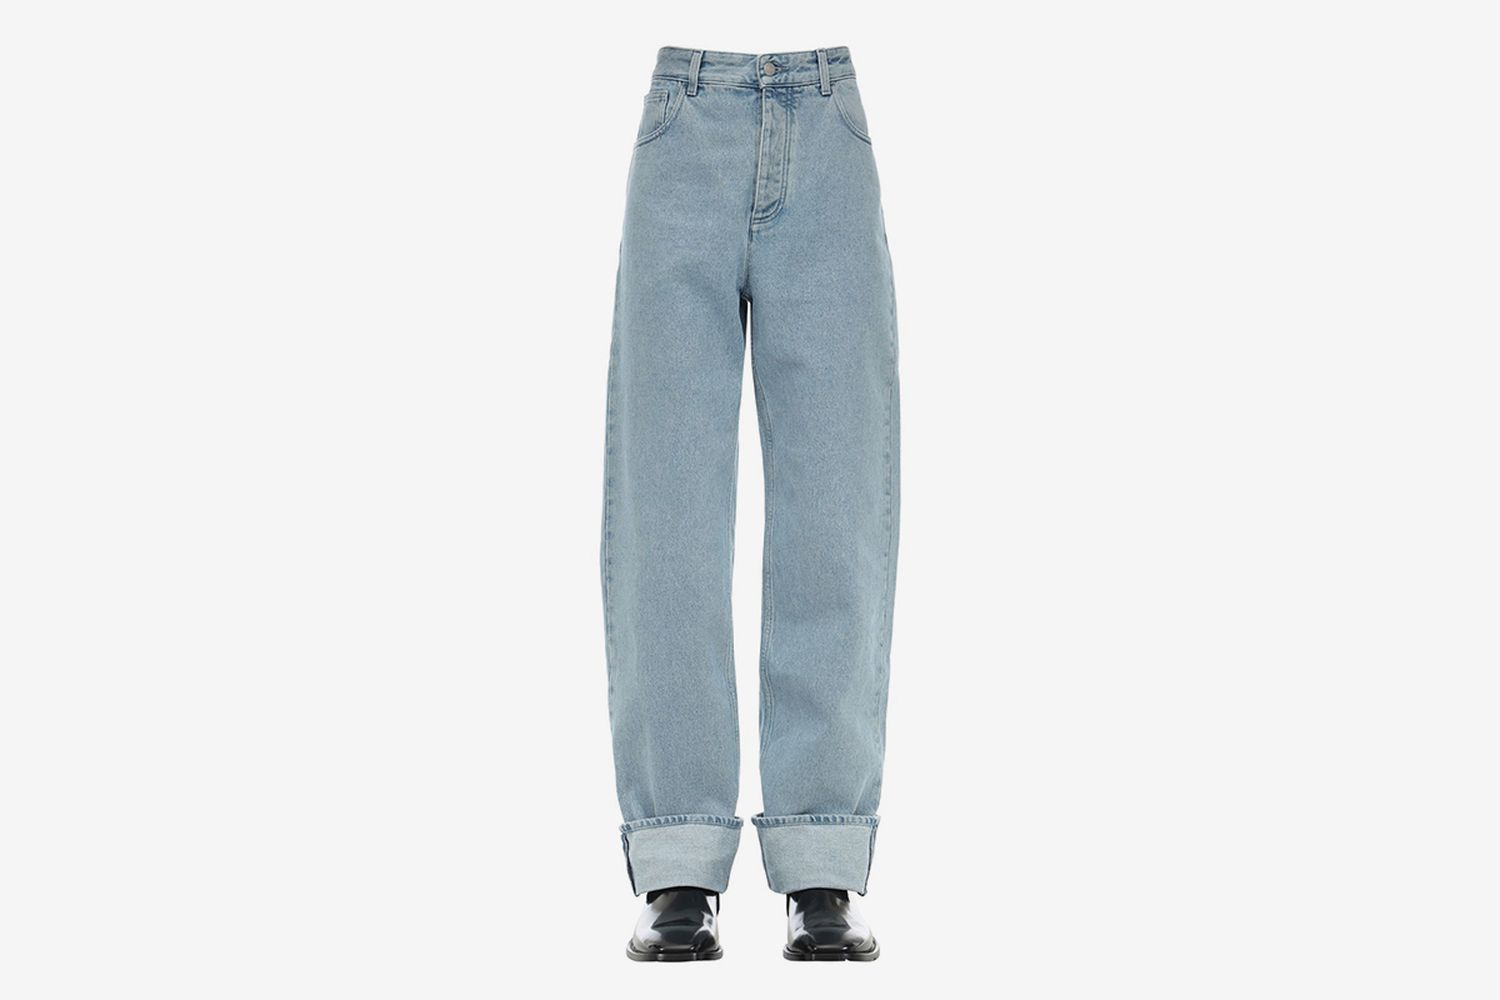 Bleached Cotton Denim Jeans